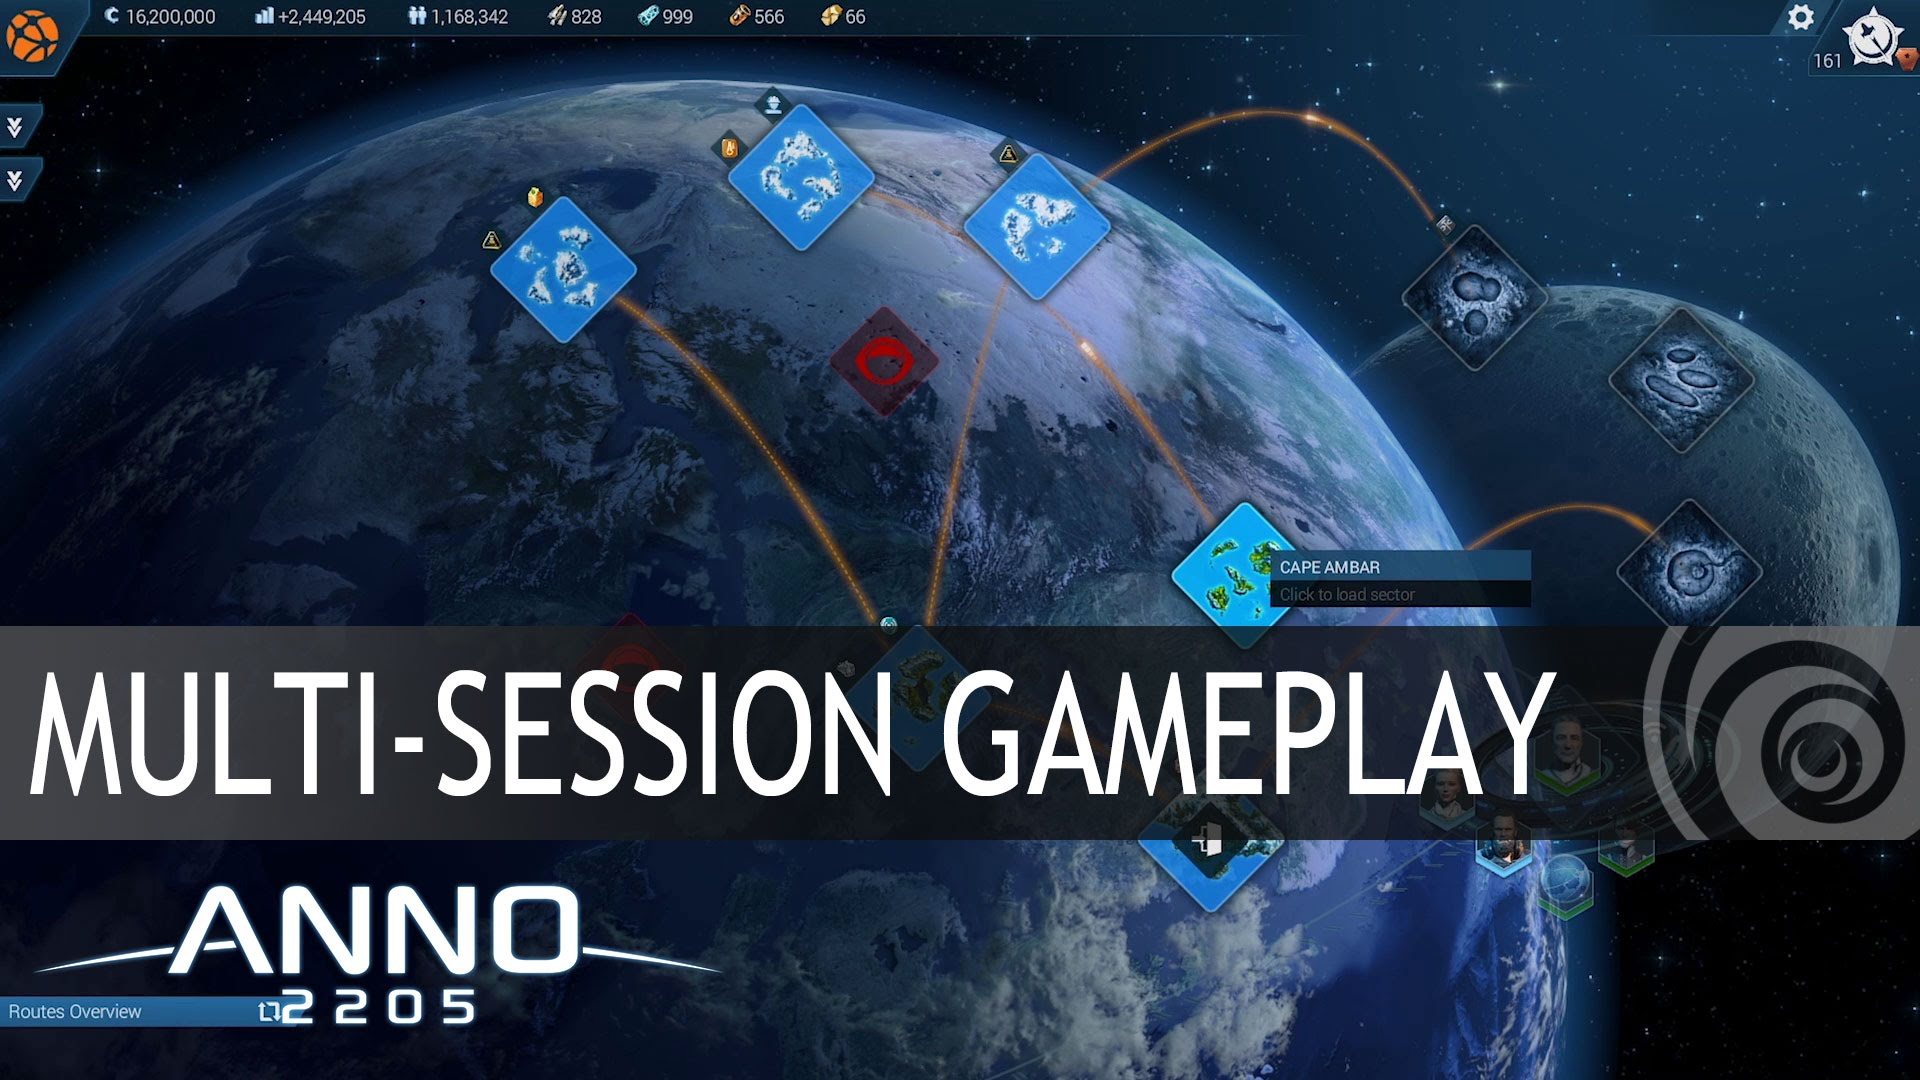 Anno 2205 - Feature Special - Multi-Session Gameplay